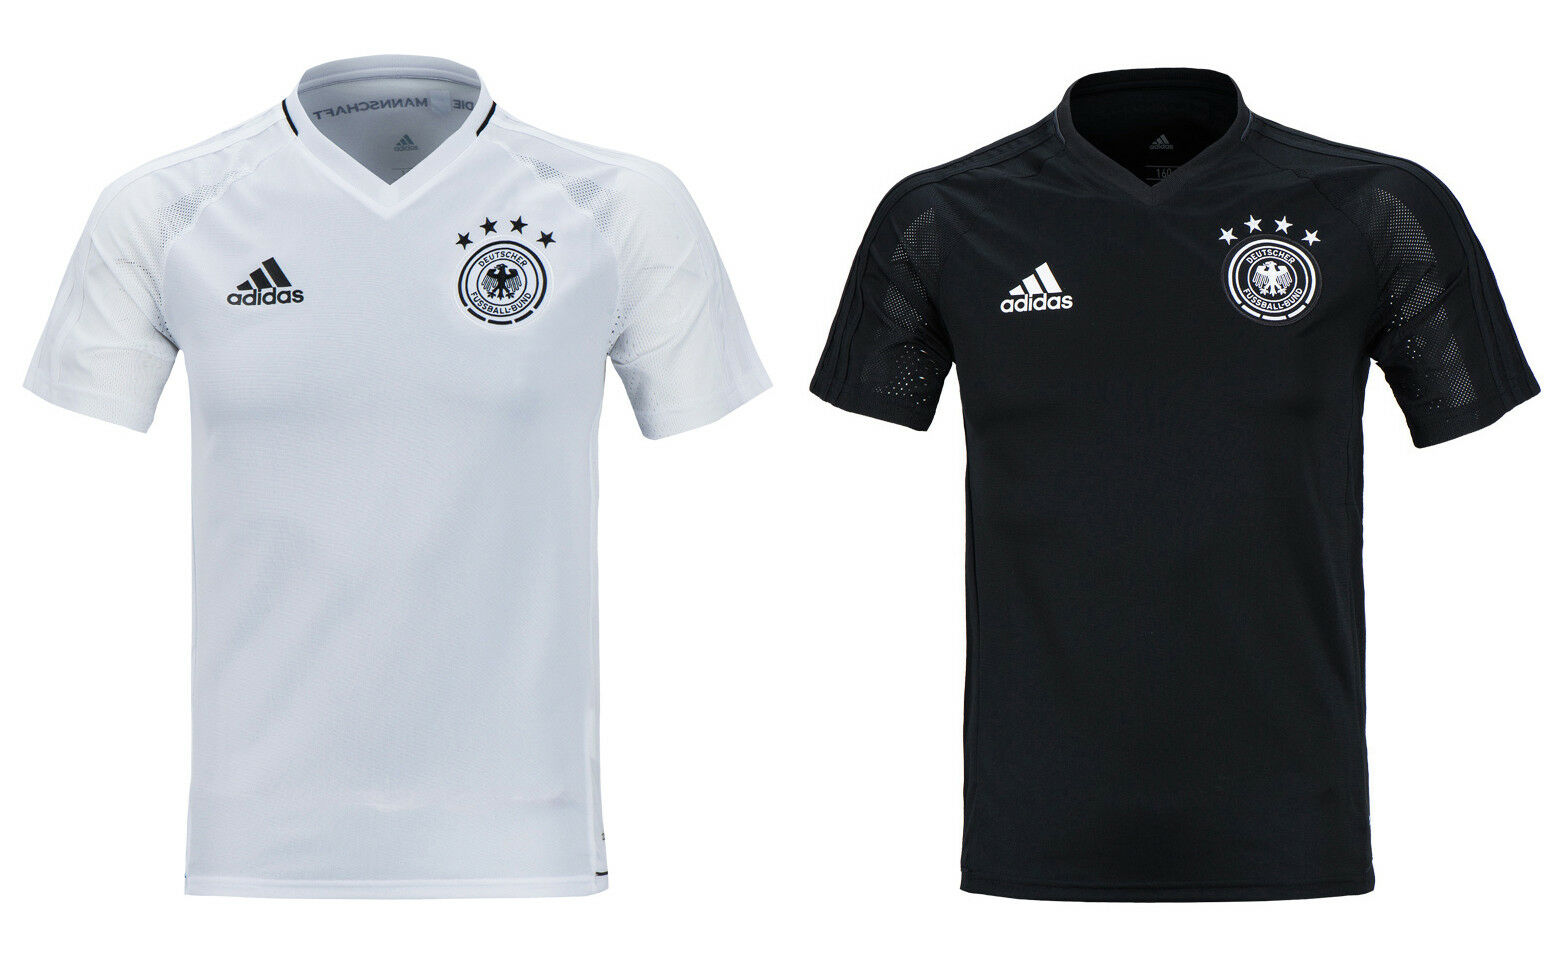 648fb1fe0af Adidas Germany DFB Training Jersey (B10555) Soccer Football T-Shirt Top